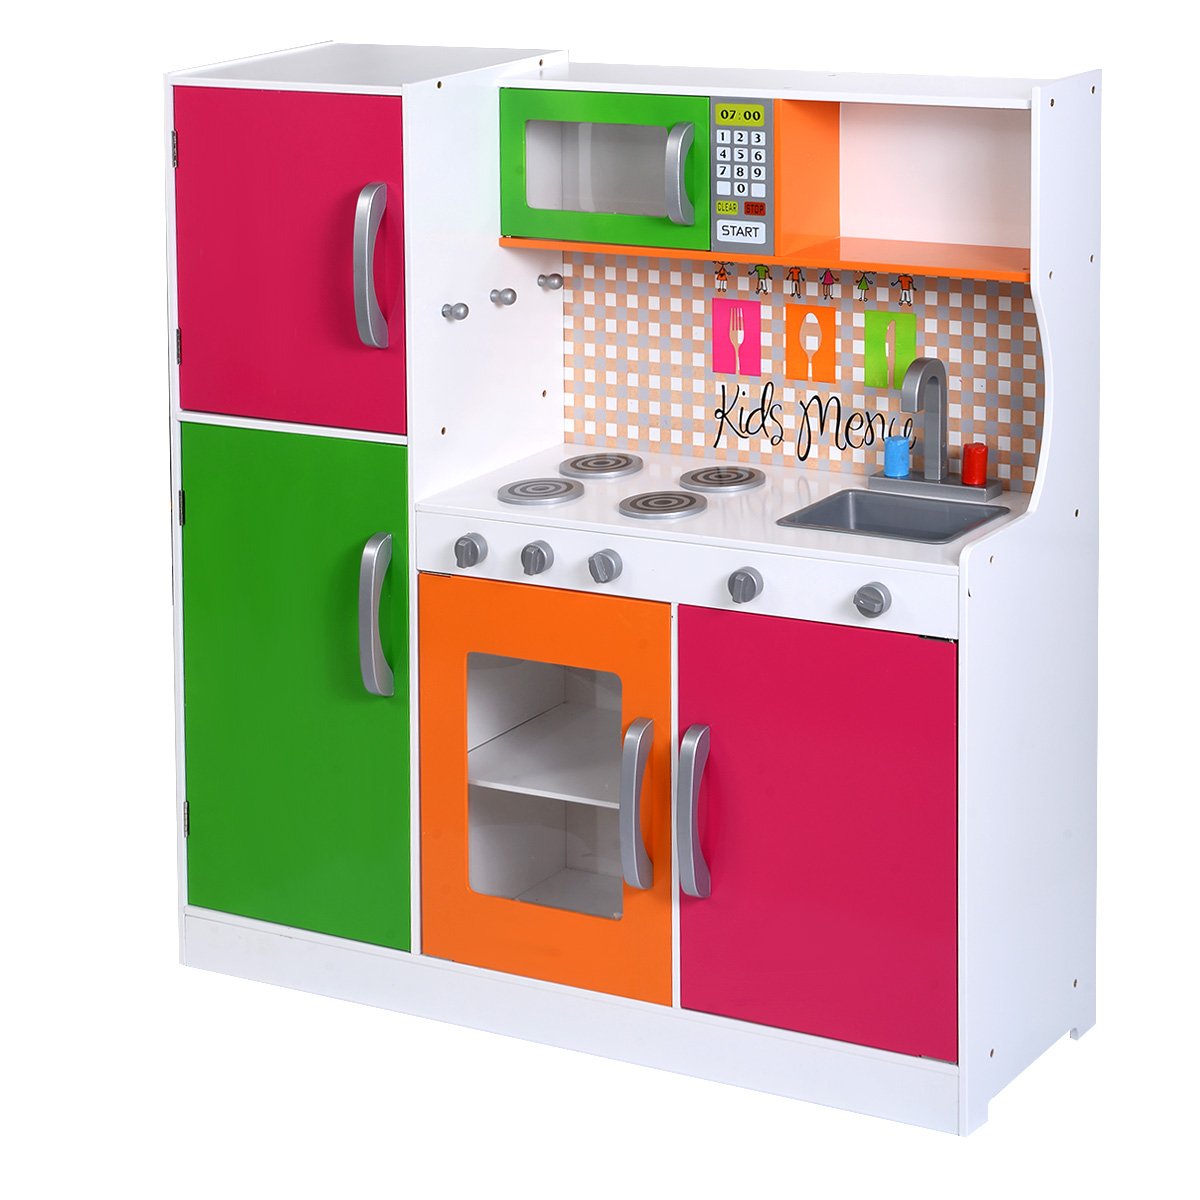 Wood Play Kitchen Set Costway Wood Kitchen Toy Kids Cooking Pretend Play Set Toddler